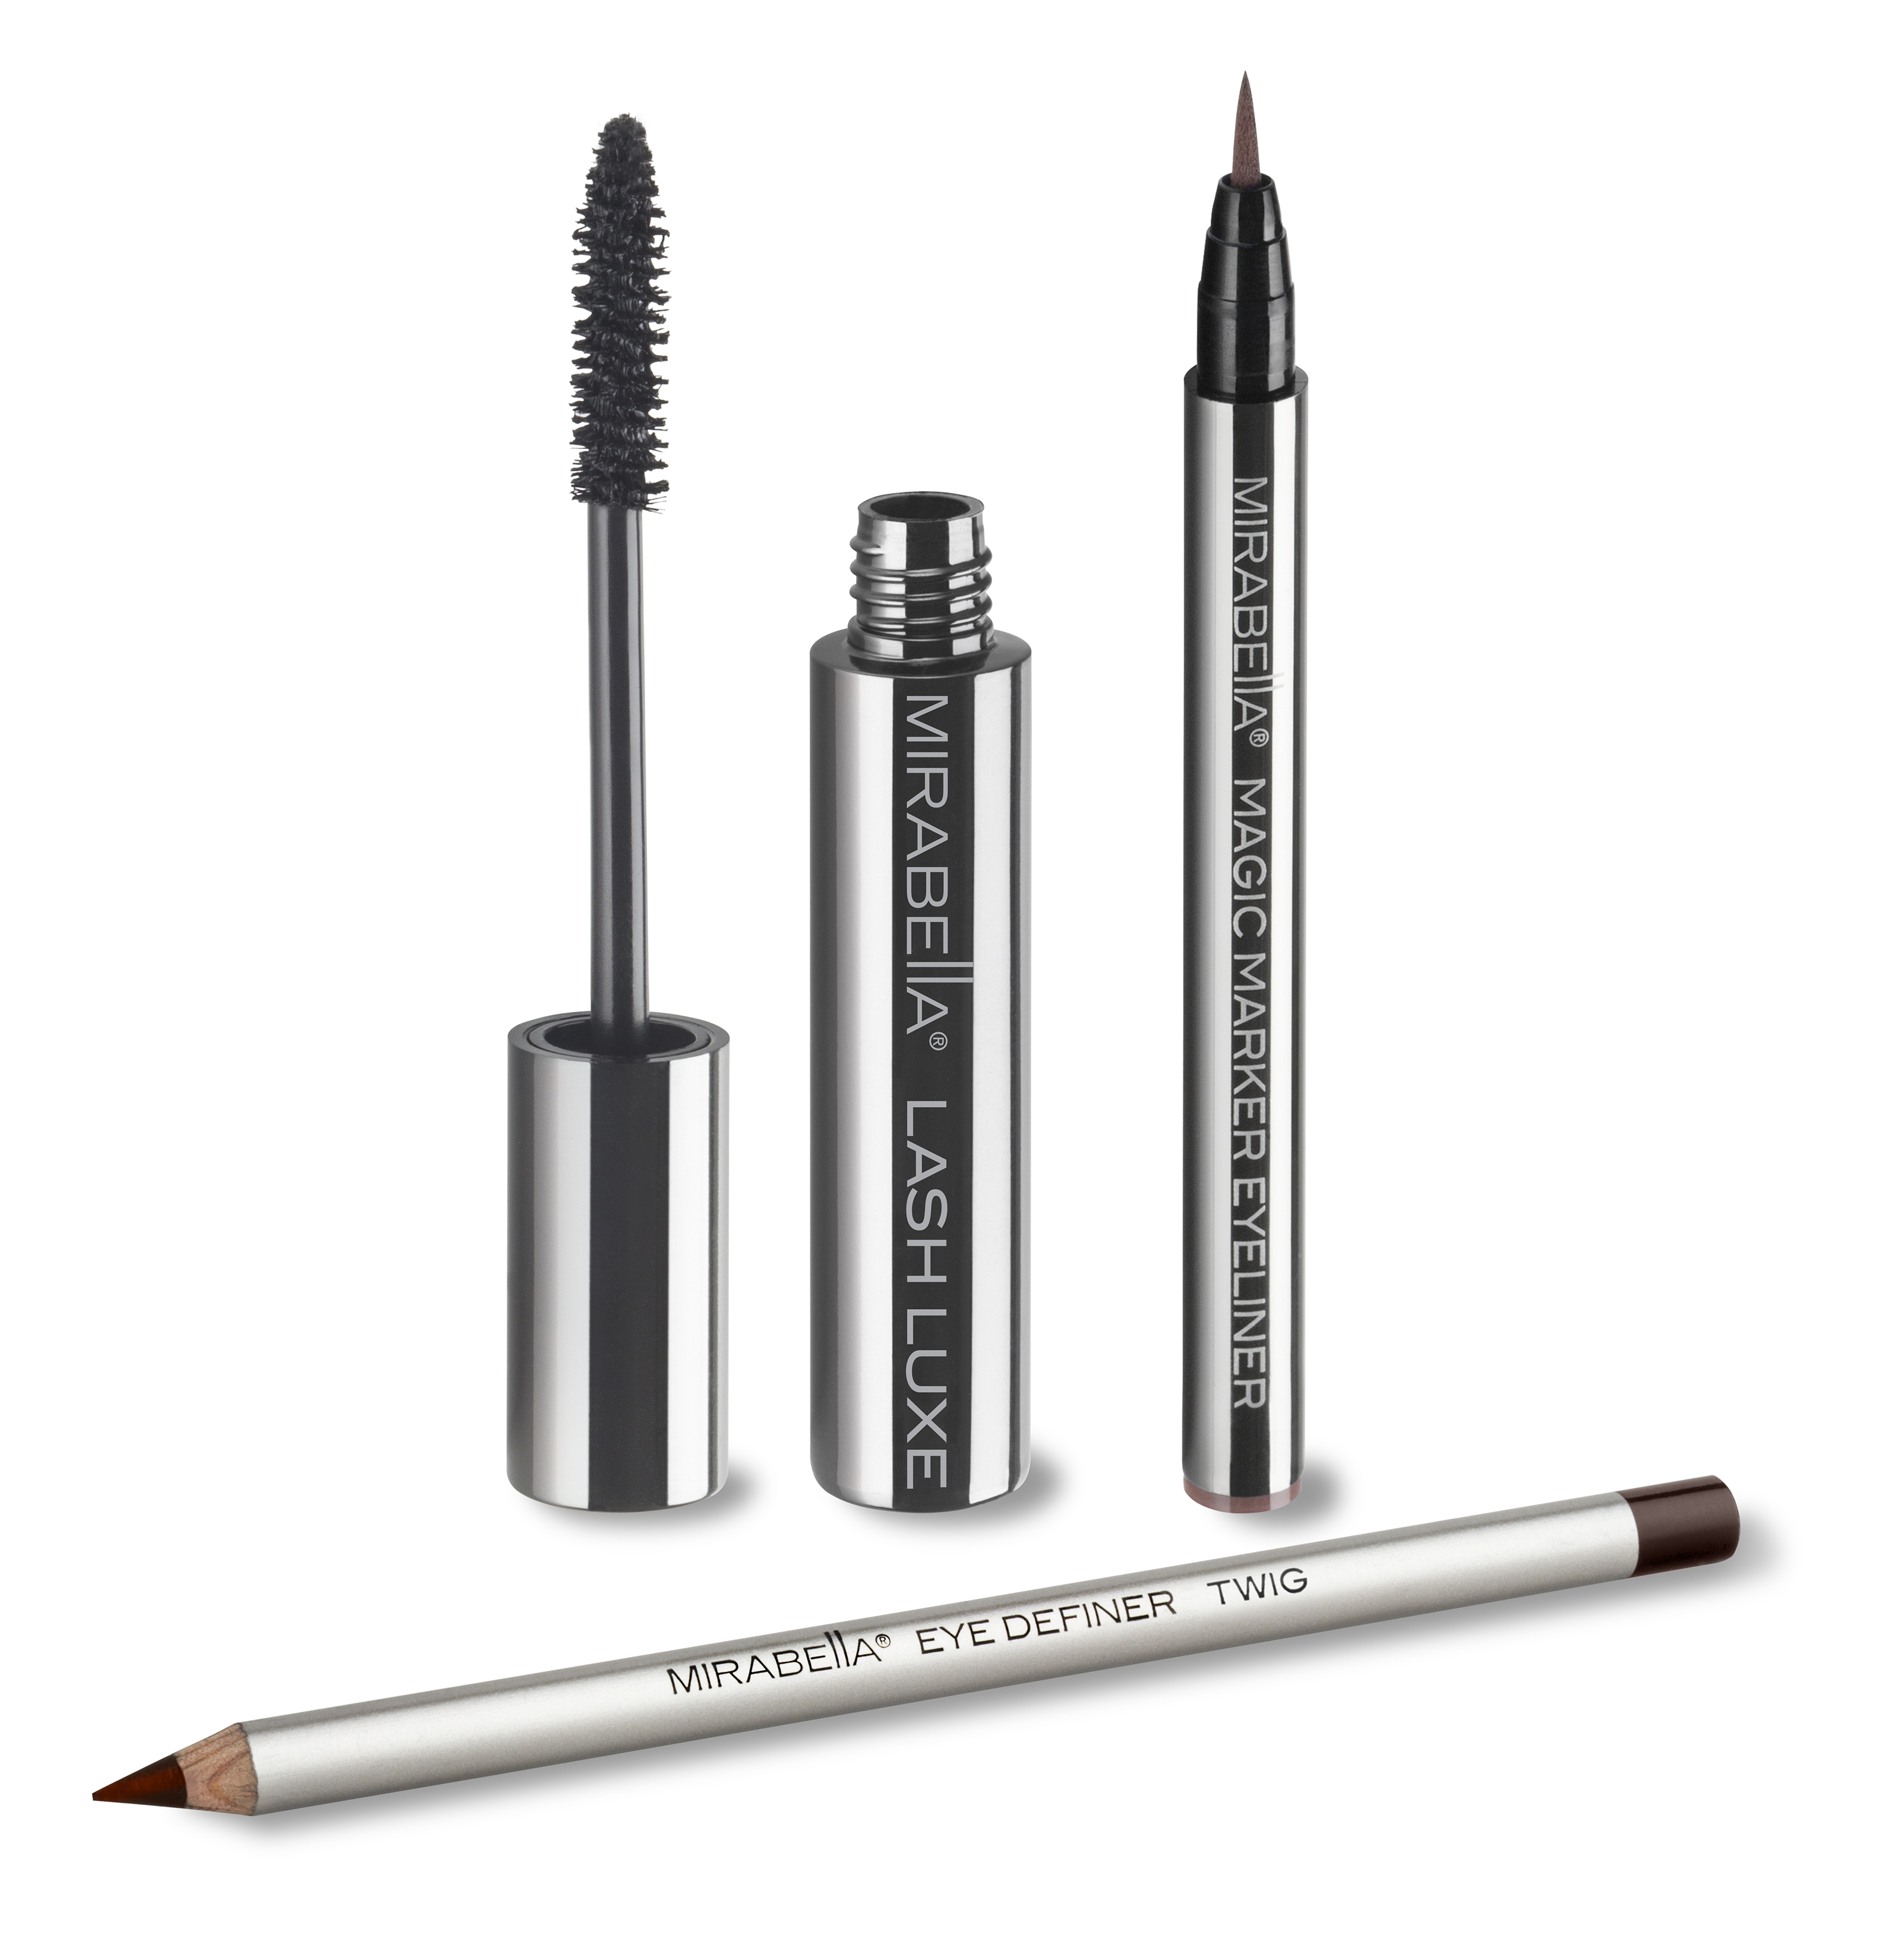 Mirabella Beauty Launches Limited Edition Lash & Line Collection